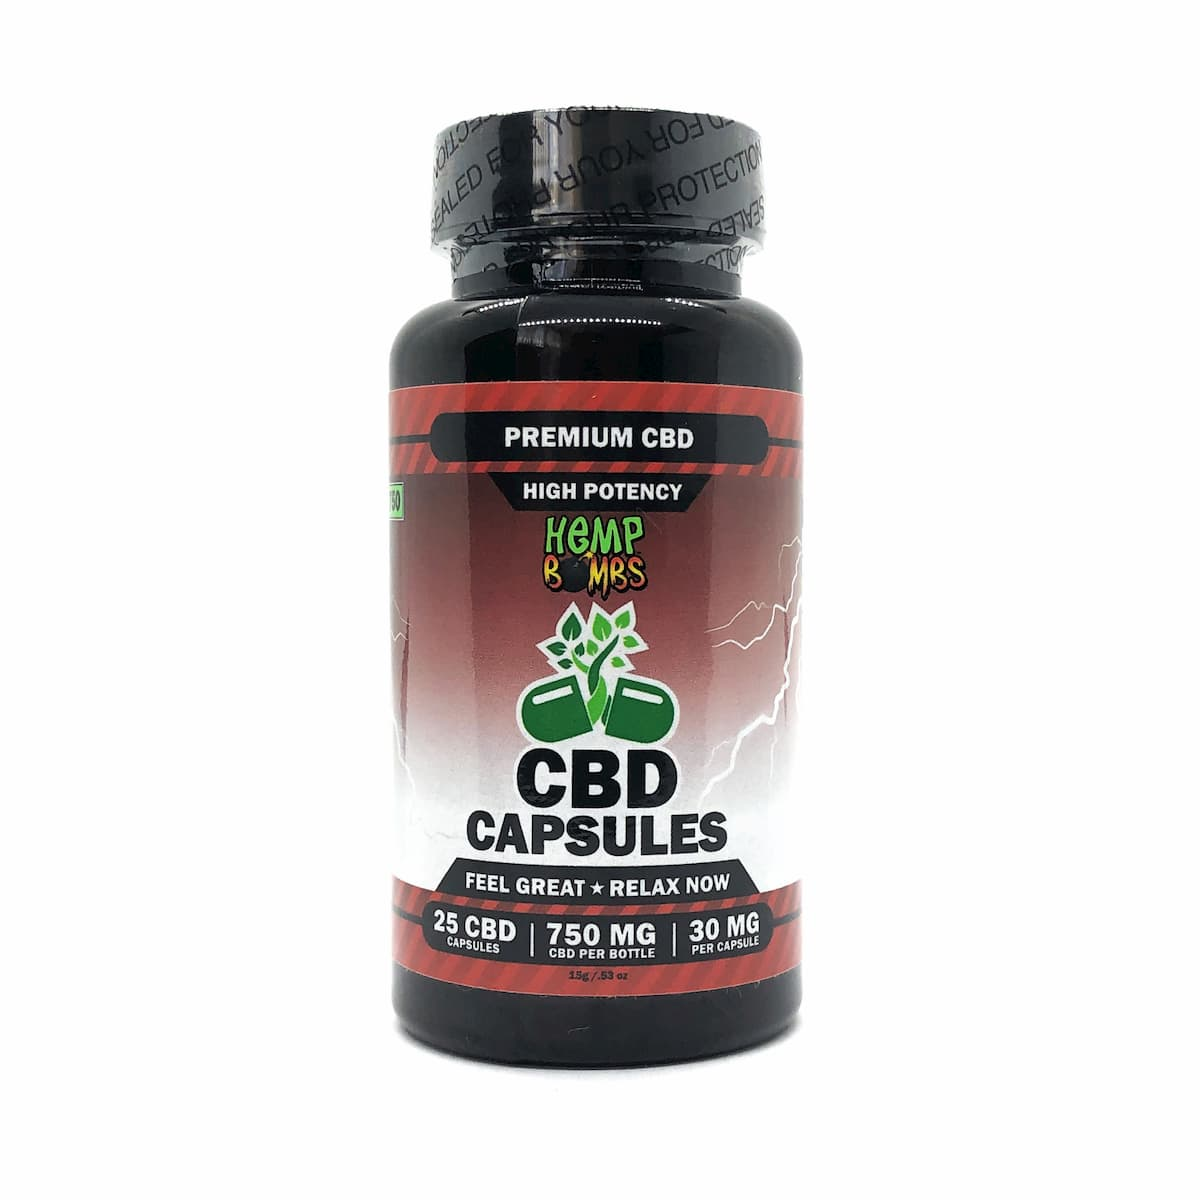 Hemp Bombs, CBD Capsules, High Potency Premium CBD, Full Spectrum, 25 Count, 750mg of CBD